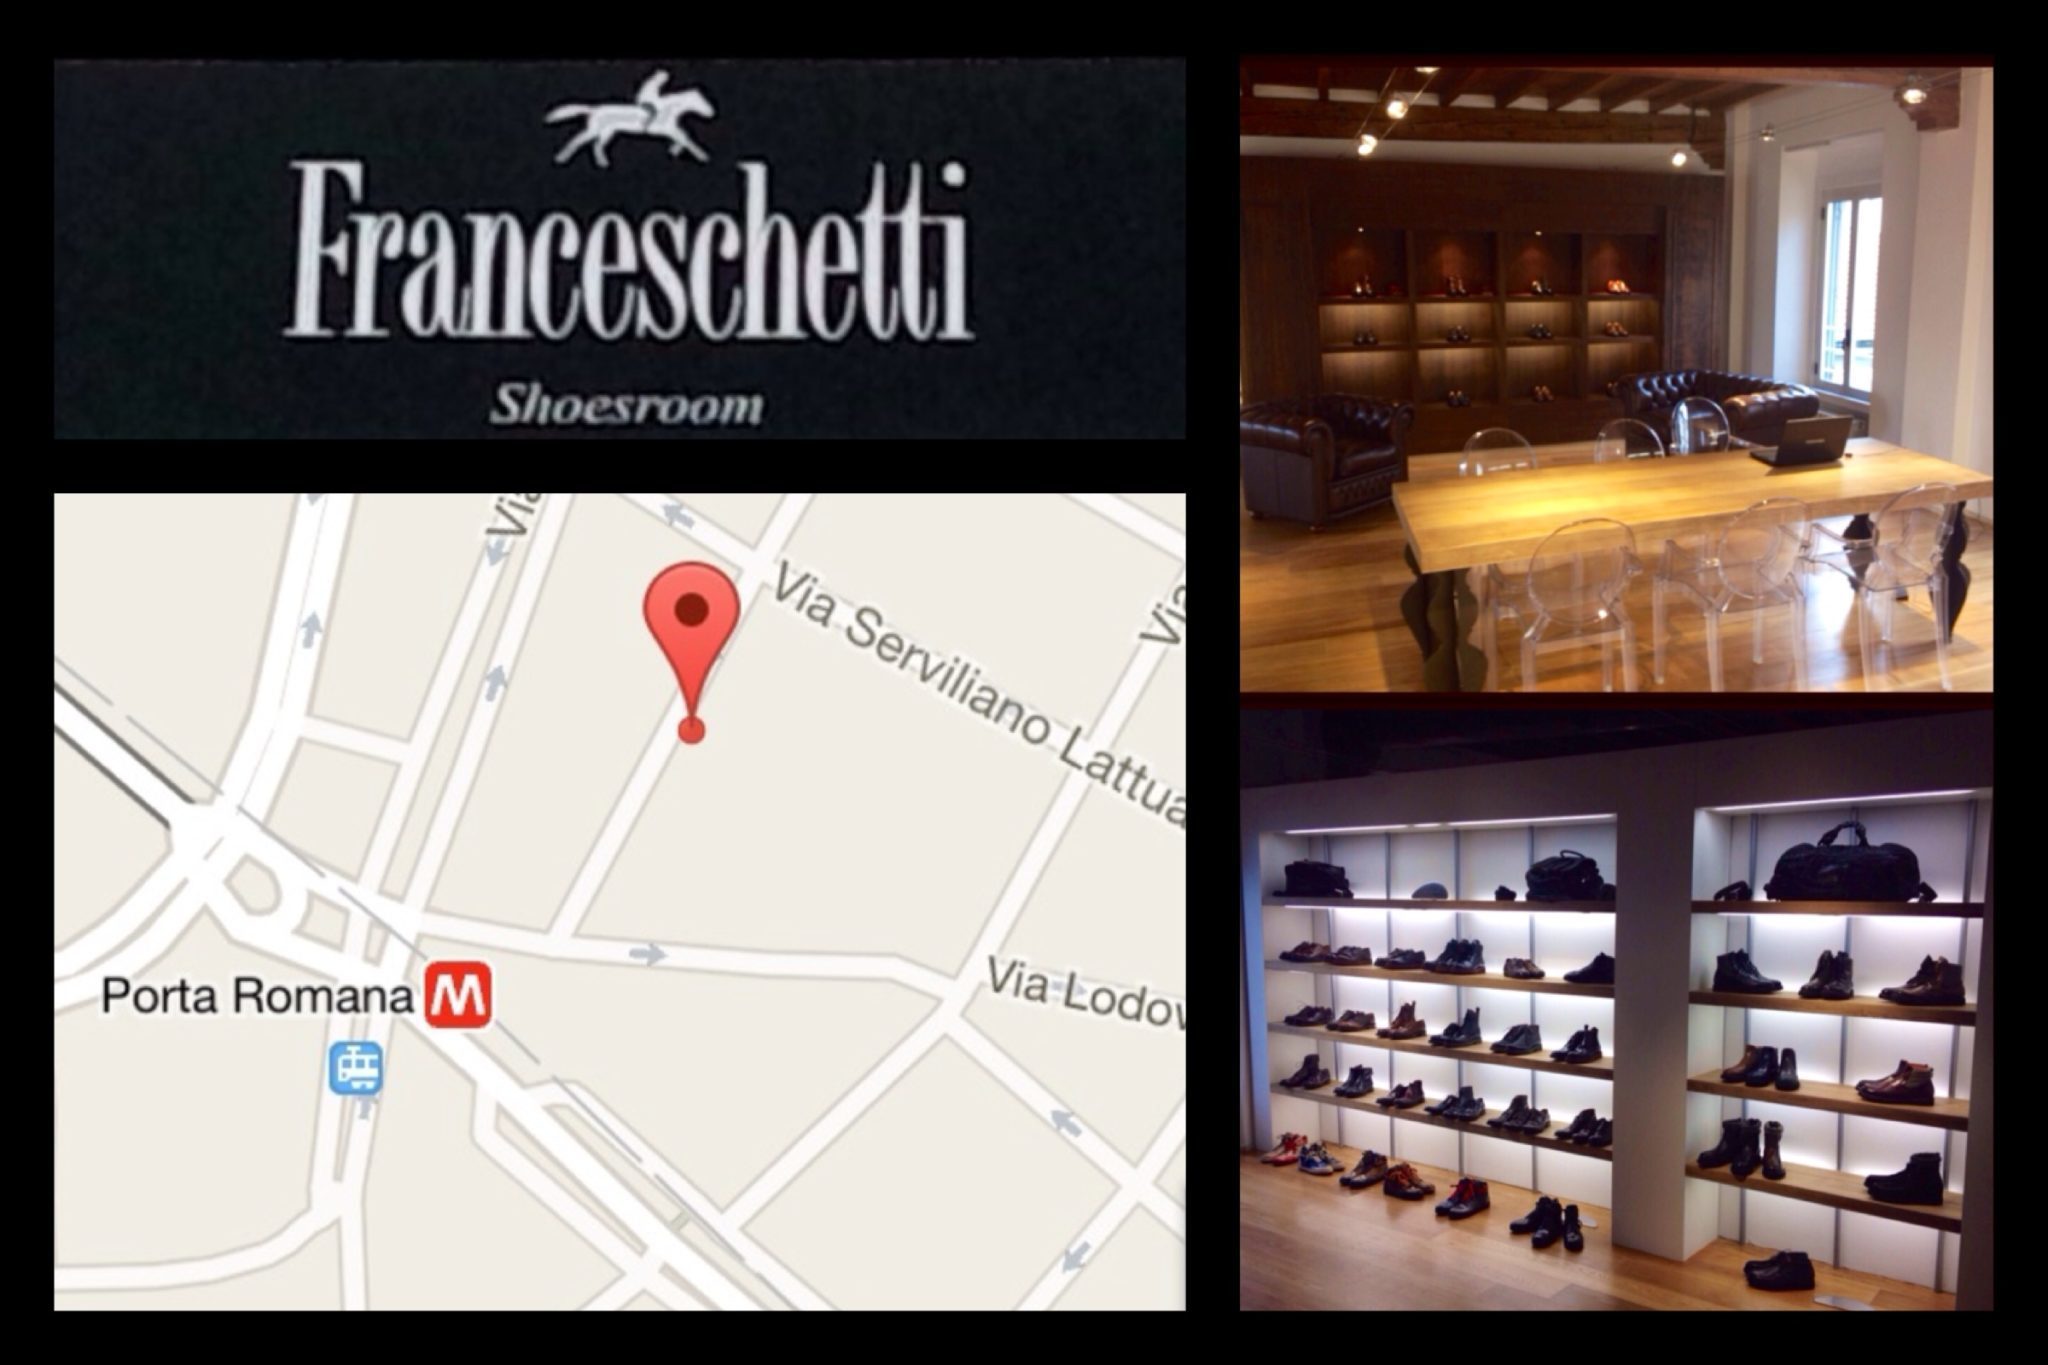 Franceschetti showroom